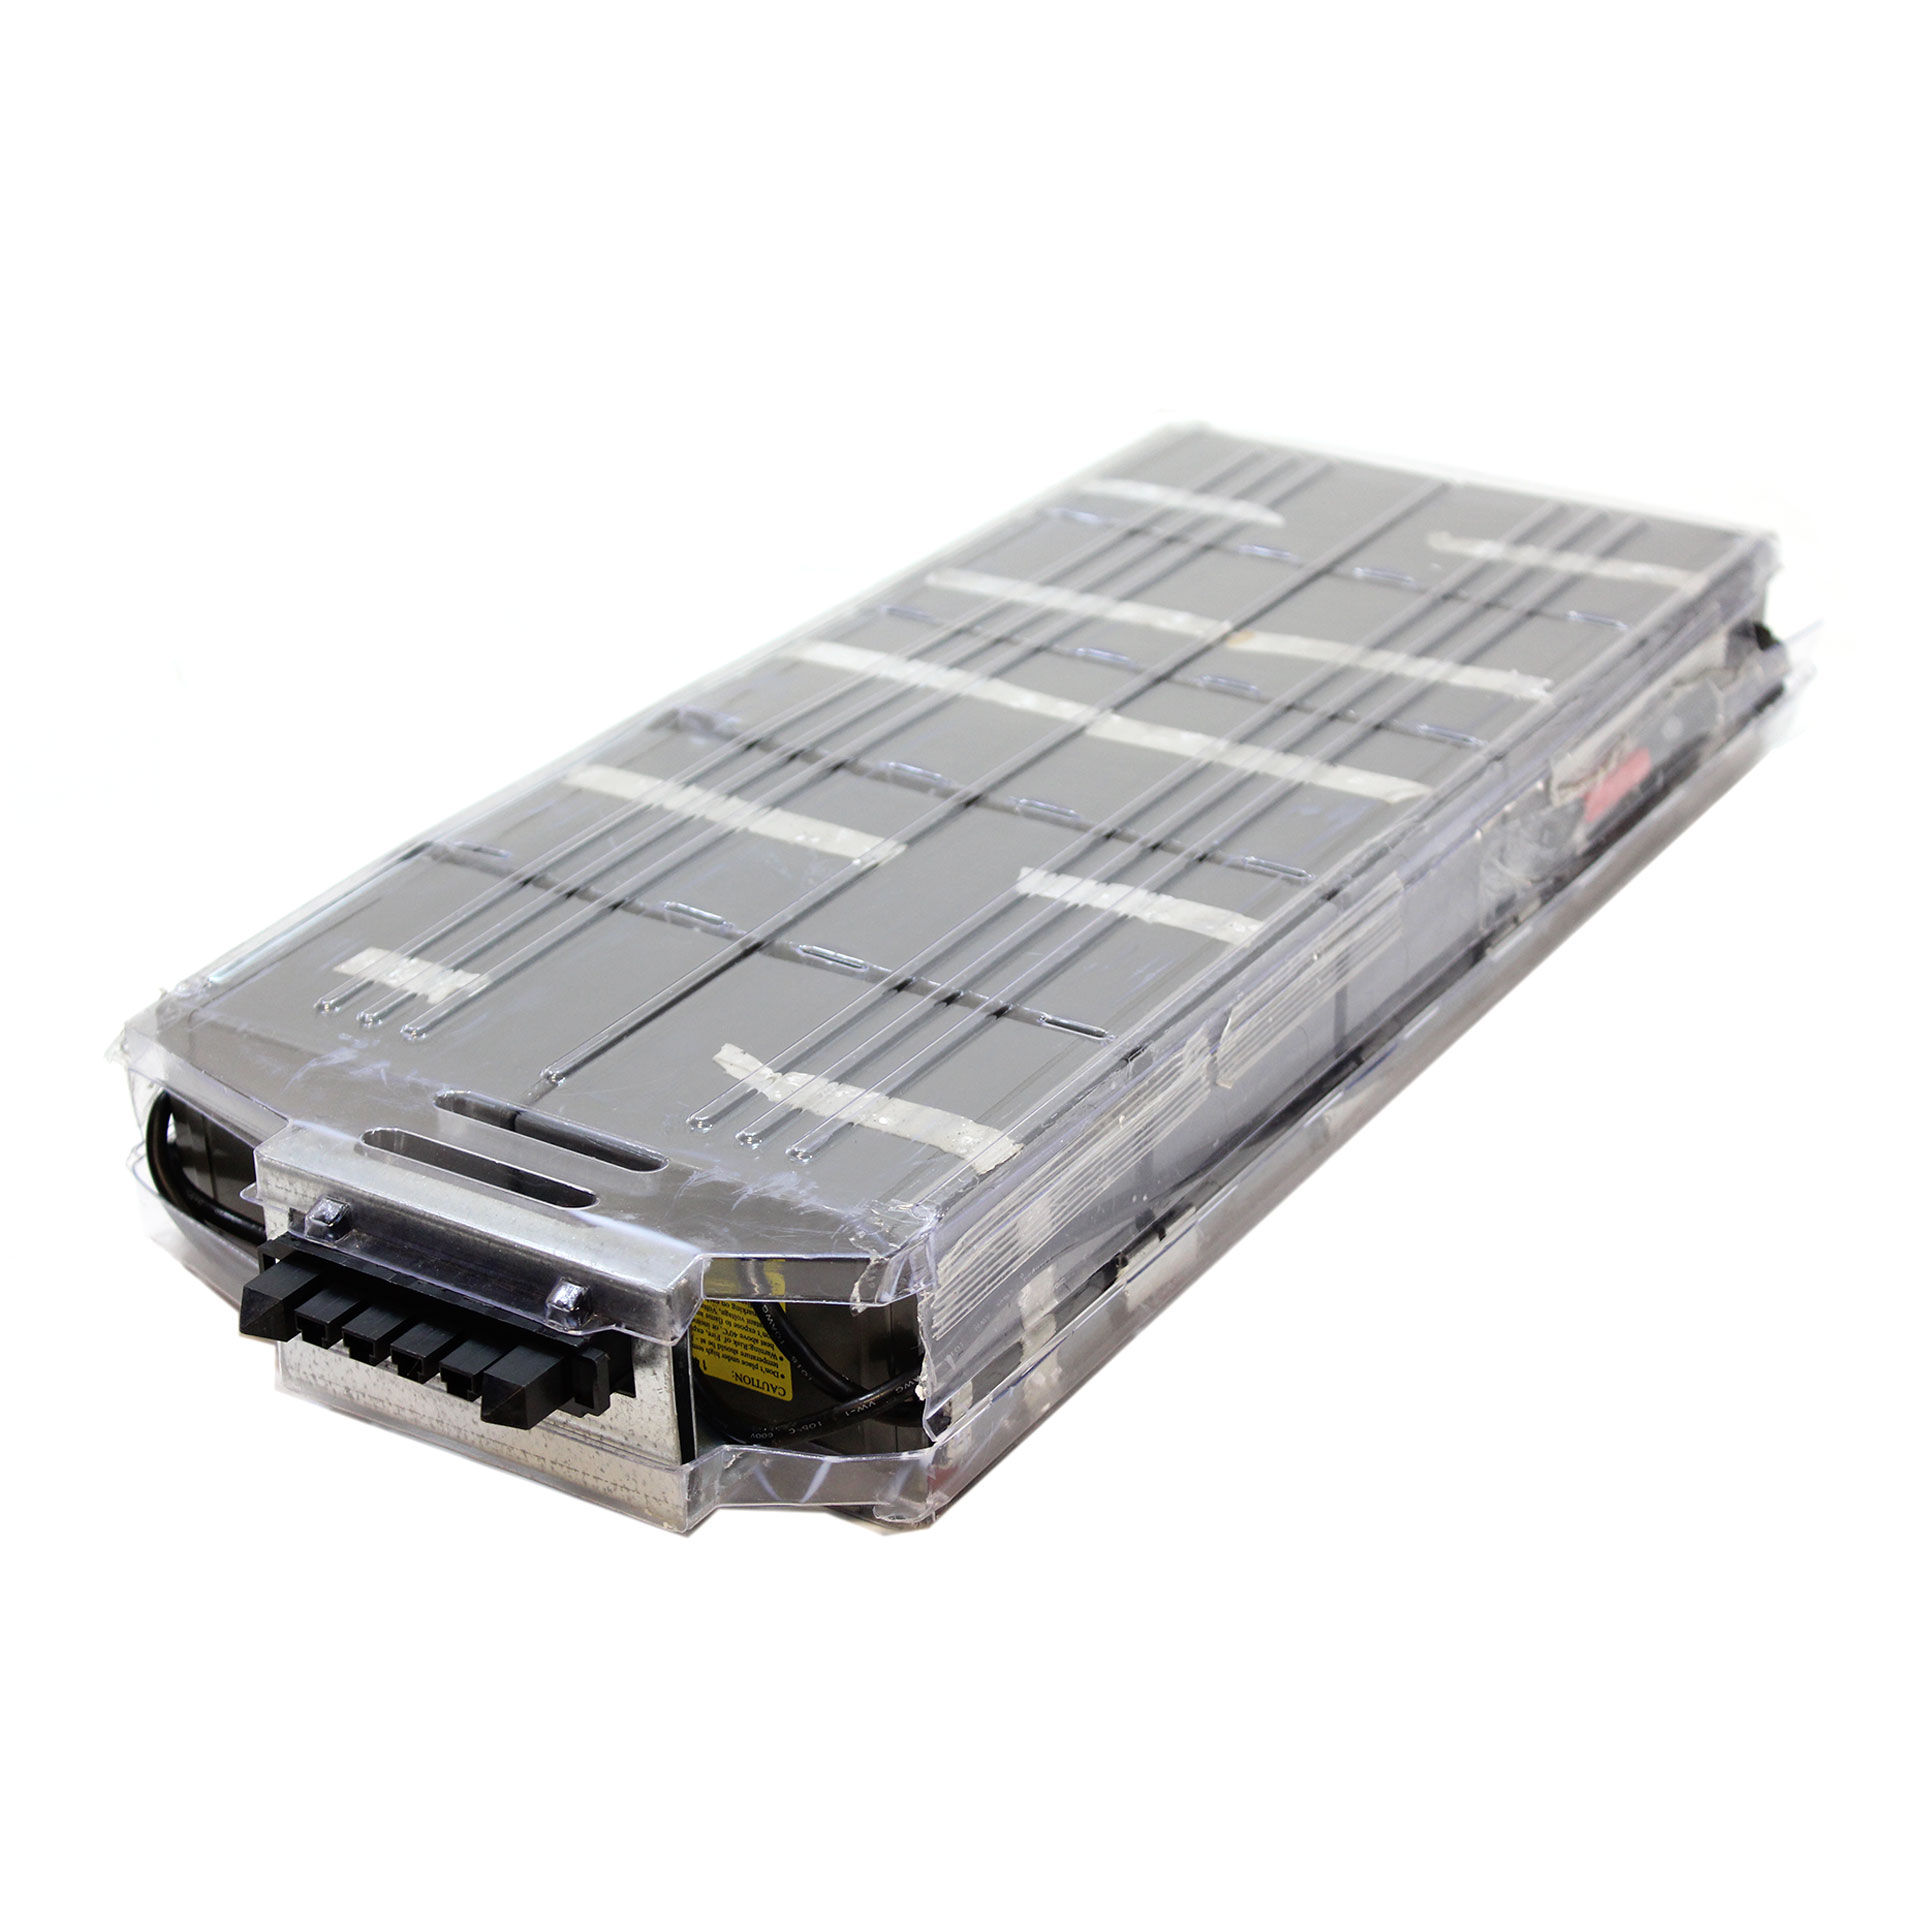 HP 407407-001 Single battery pack R3000XR